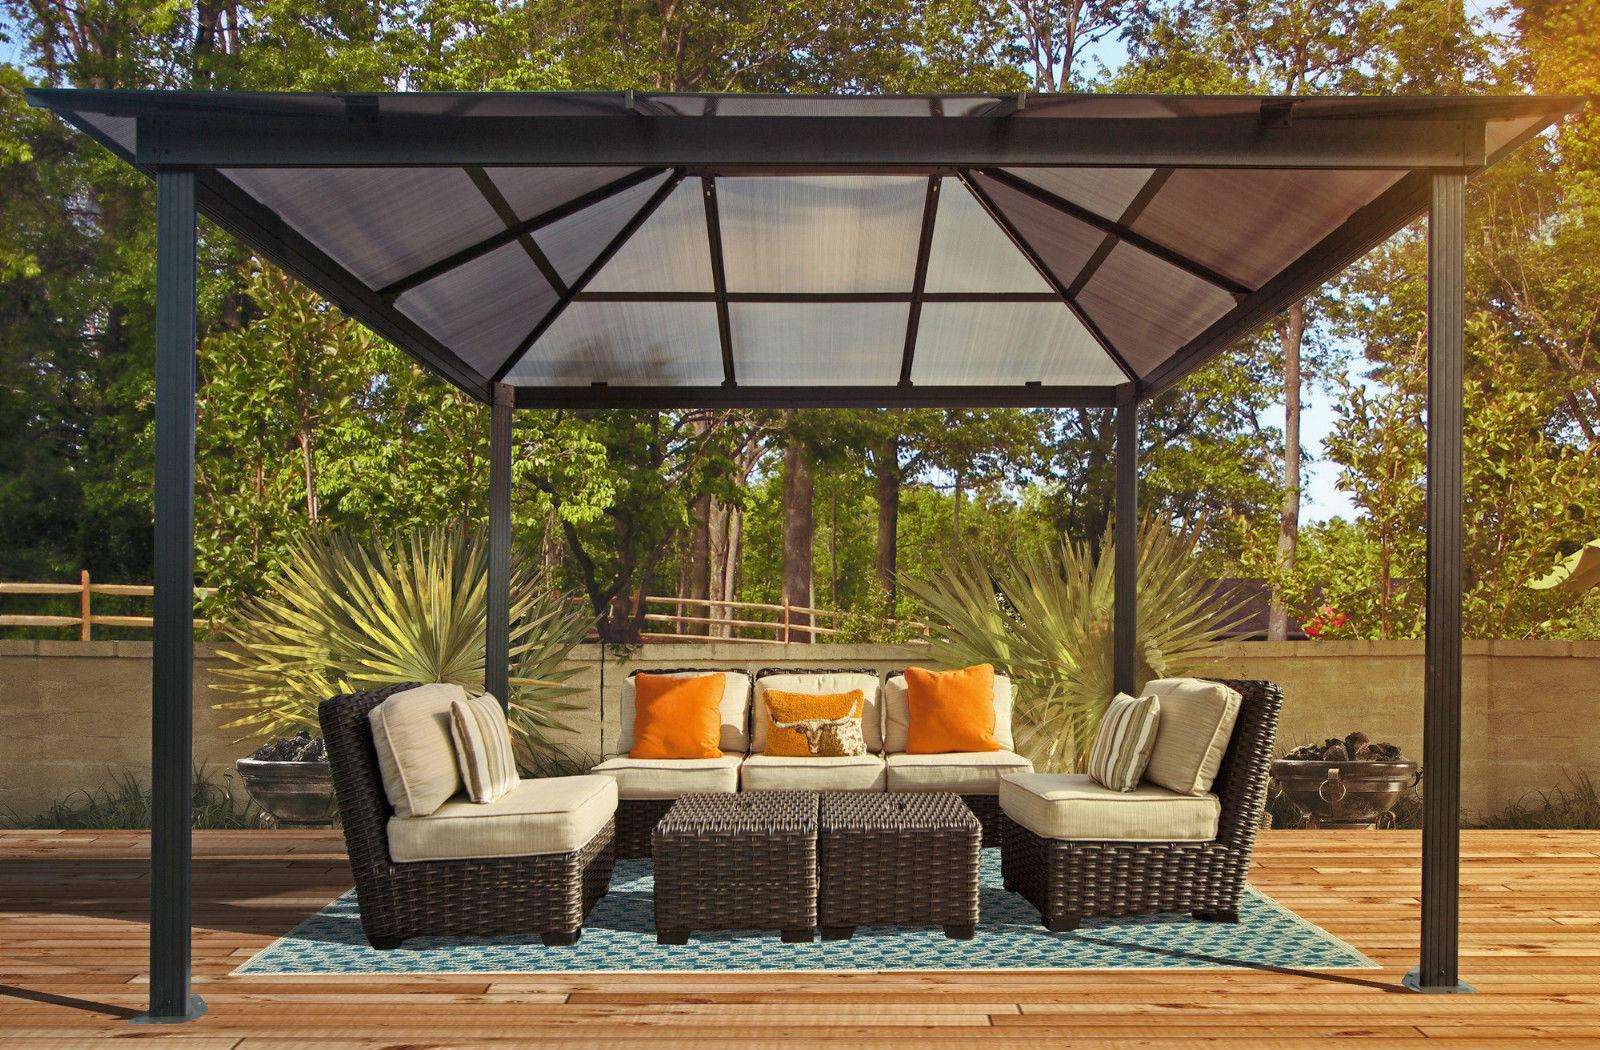 Gazebo 15x15 | Screened Gazebo | Gazebo 8x10